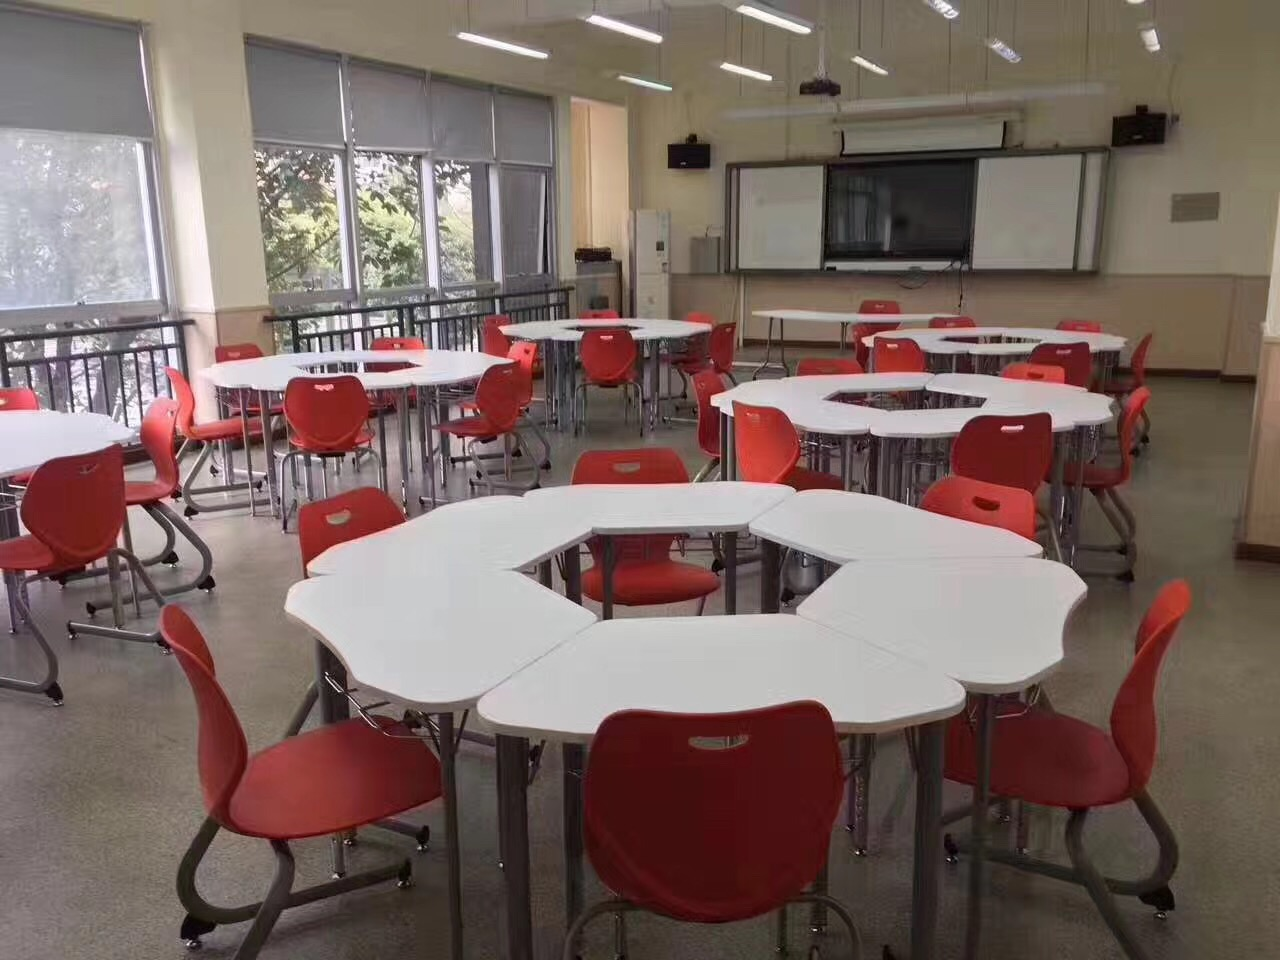 school hexagon smart classroom furniture student chair and table